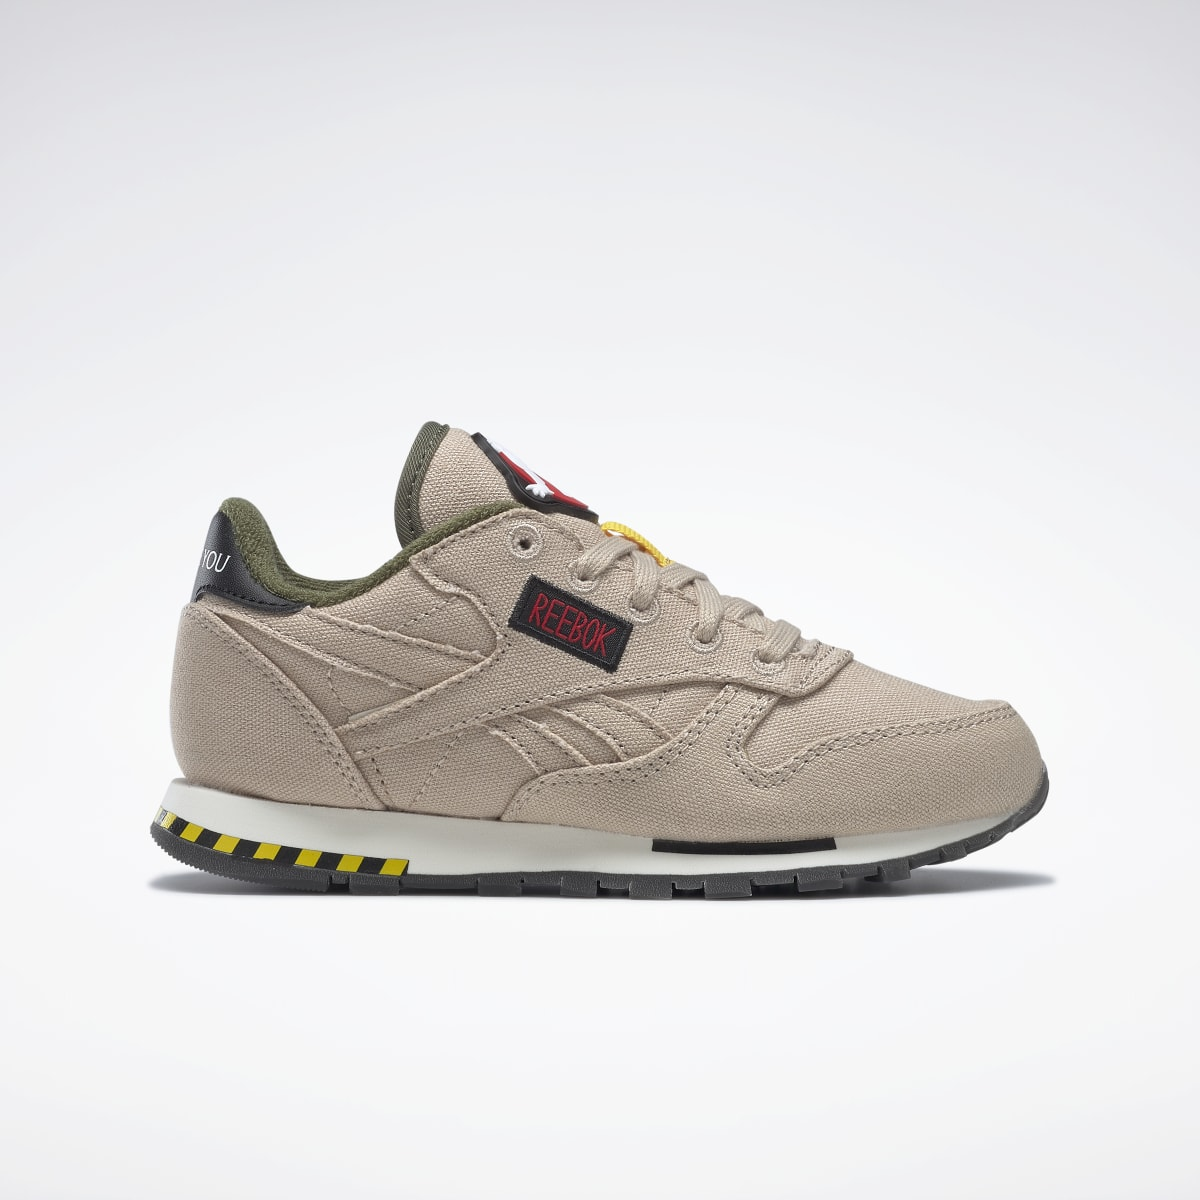 REEBOK Ghostbusters Classic Leather PS Shoes - Preschool